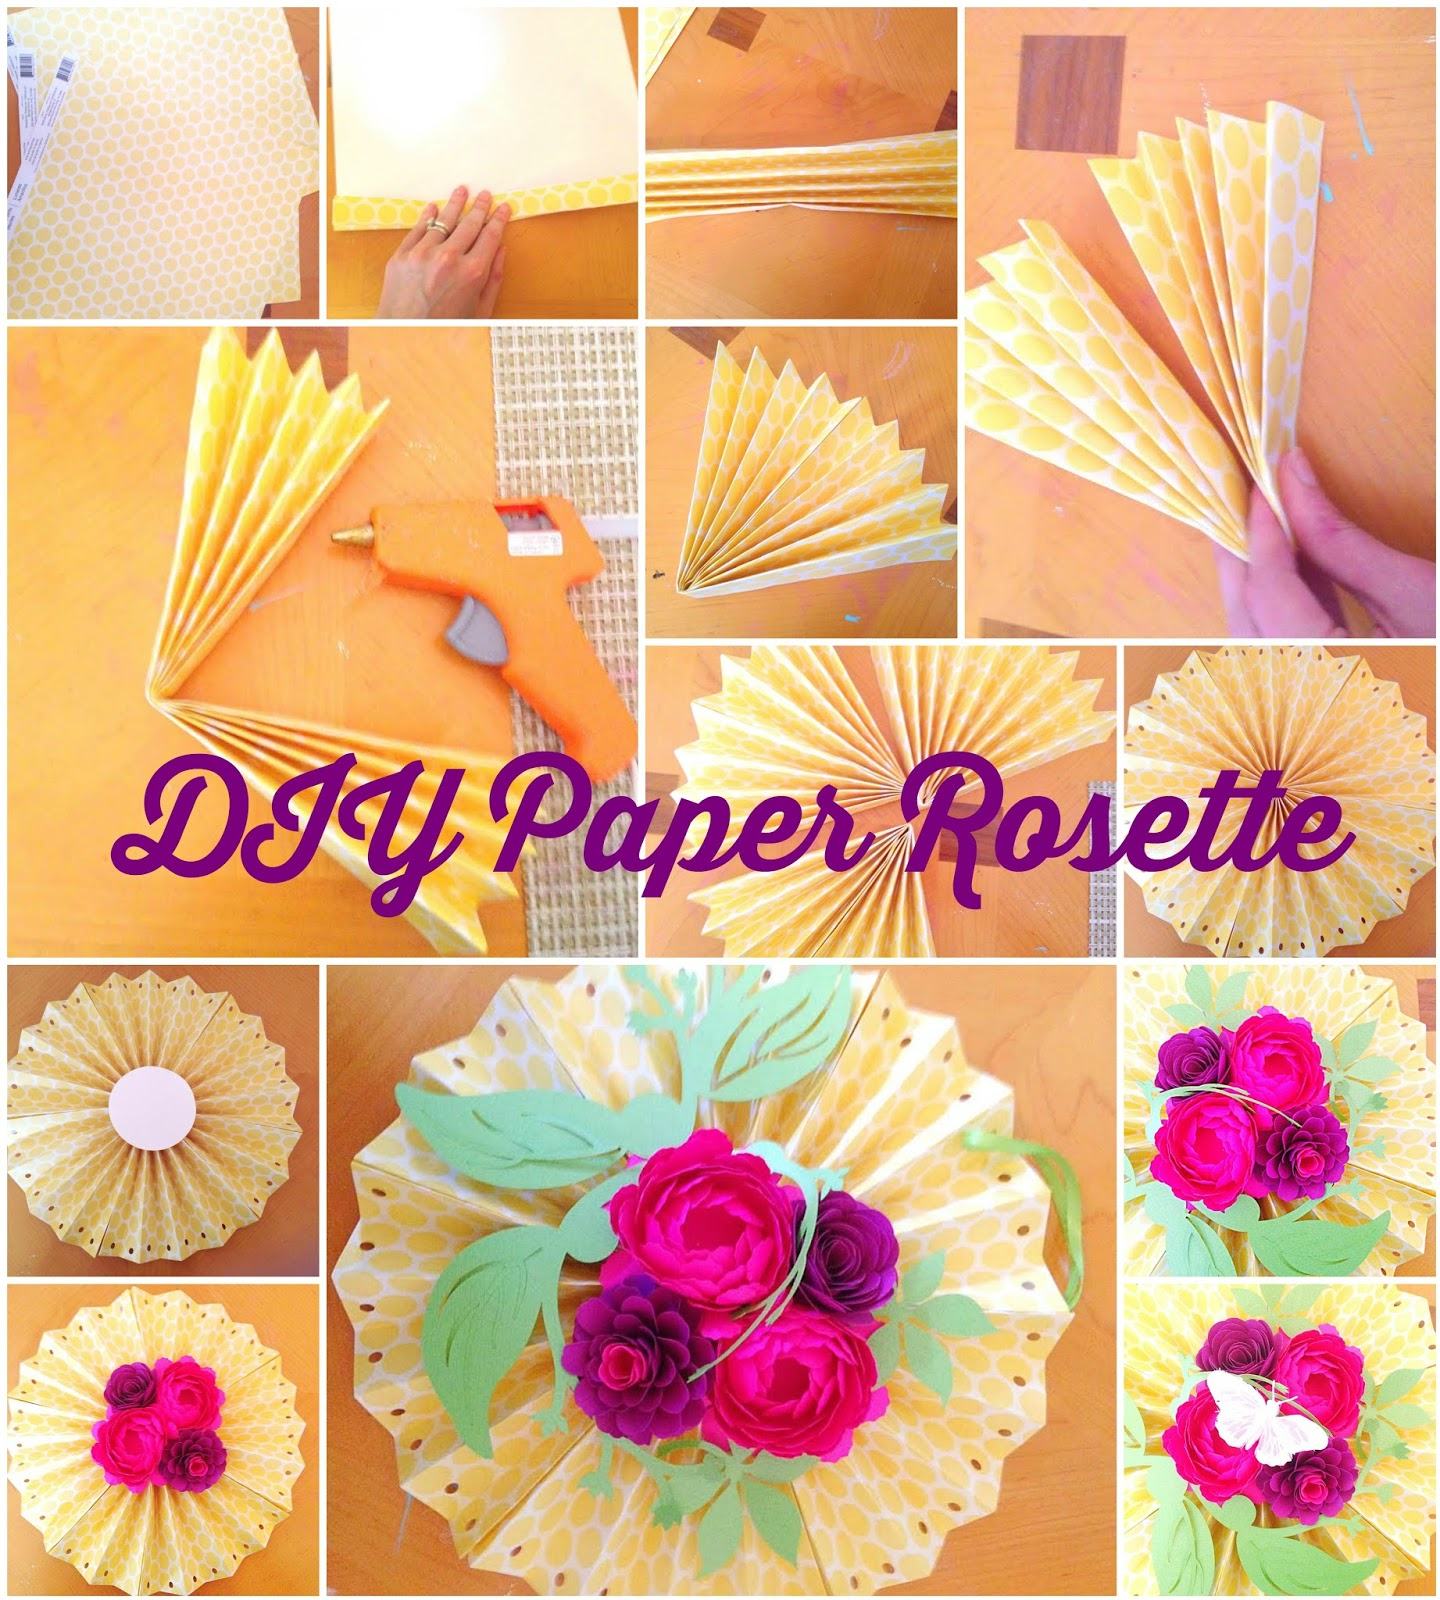 Diy paper rosette hanging fan with decorative paper flowers abbi diy paper rosette hanging fan with decorative paper flowers mightylinksfo